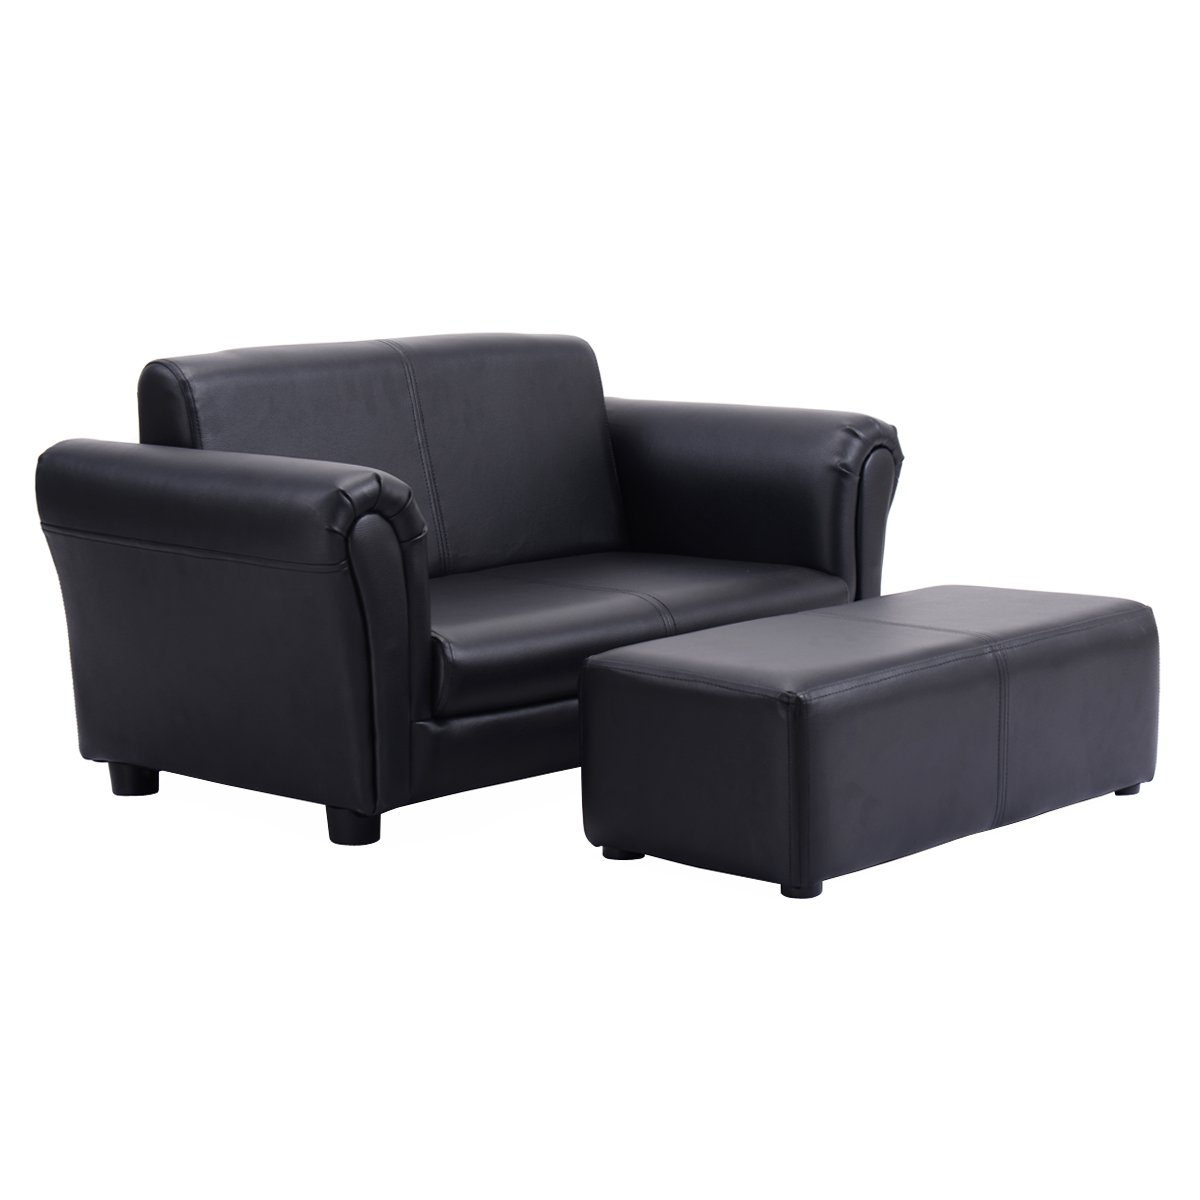 Kids Furniture Couch: Amazon.com : Keet Roundy Denim Children's Chair, Sofa And